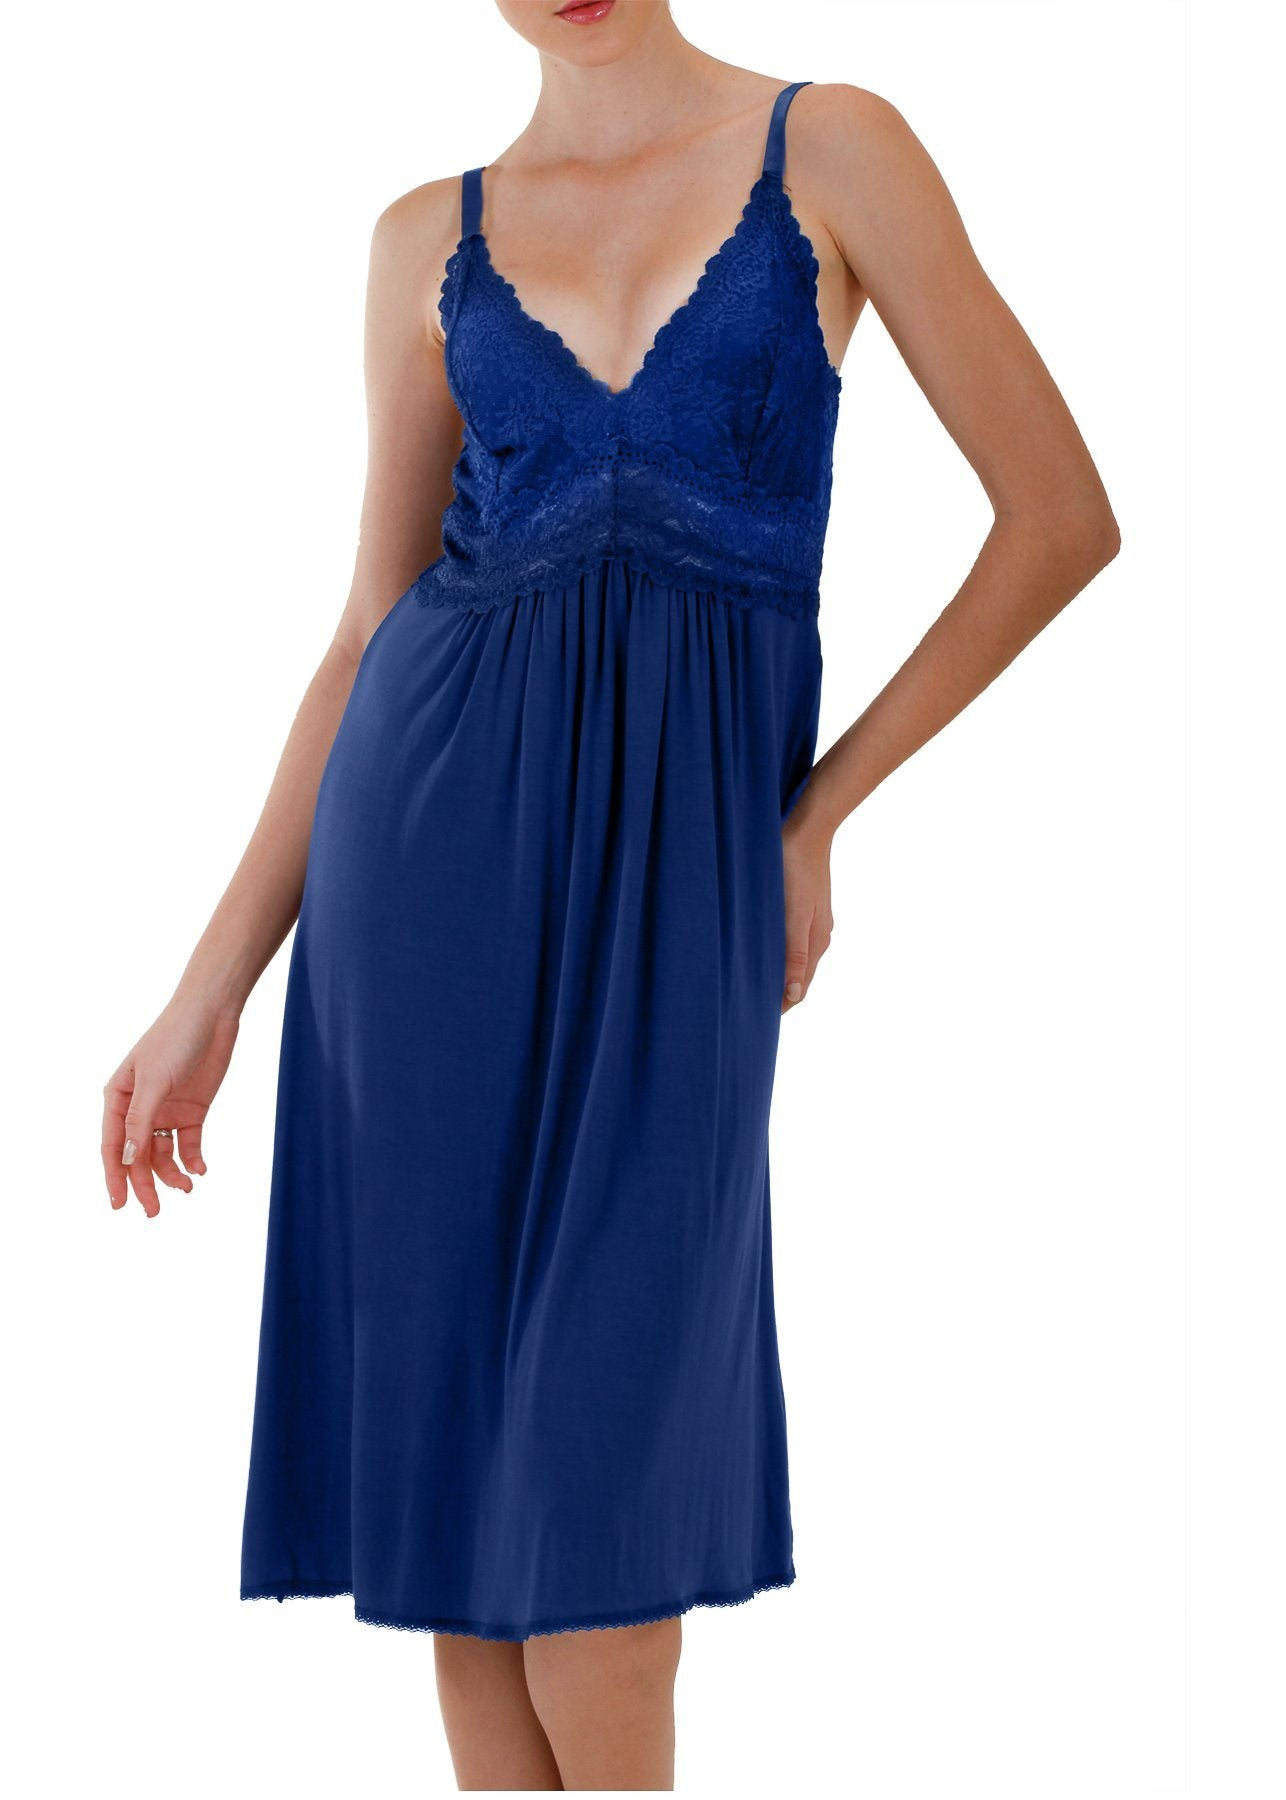 Bliss Nightgown - Marine Blue Mystique Intimates